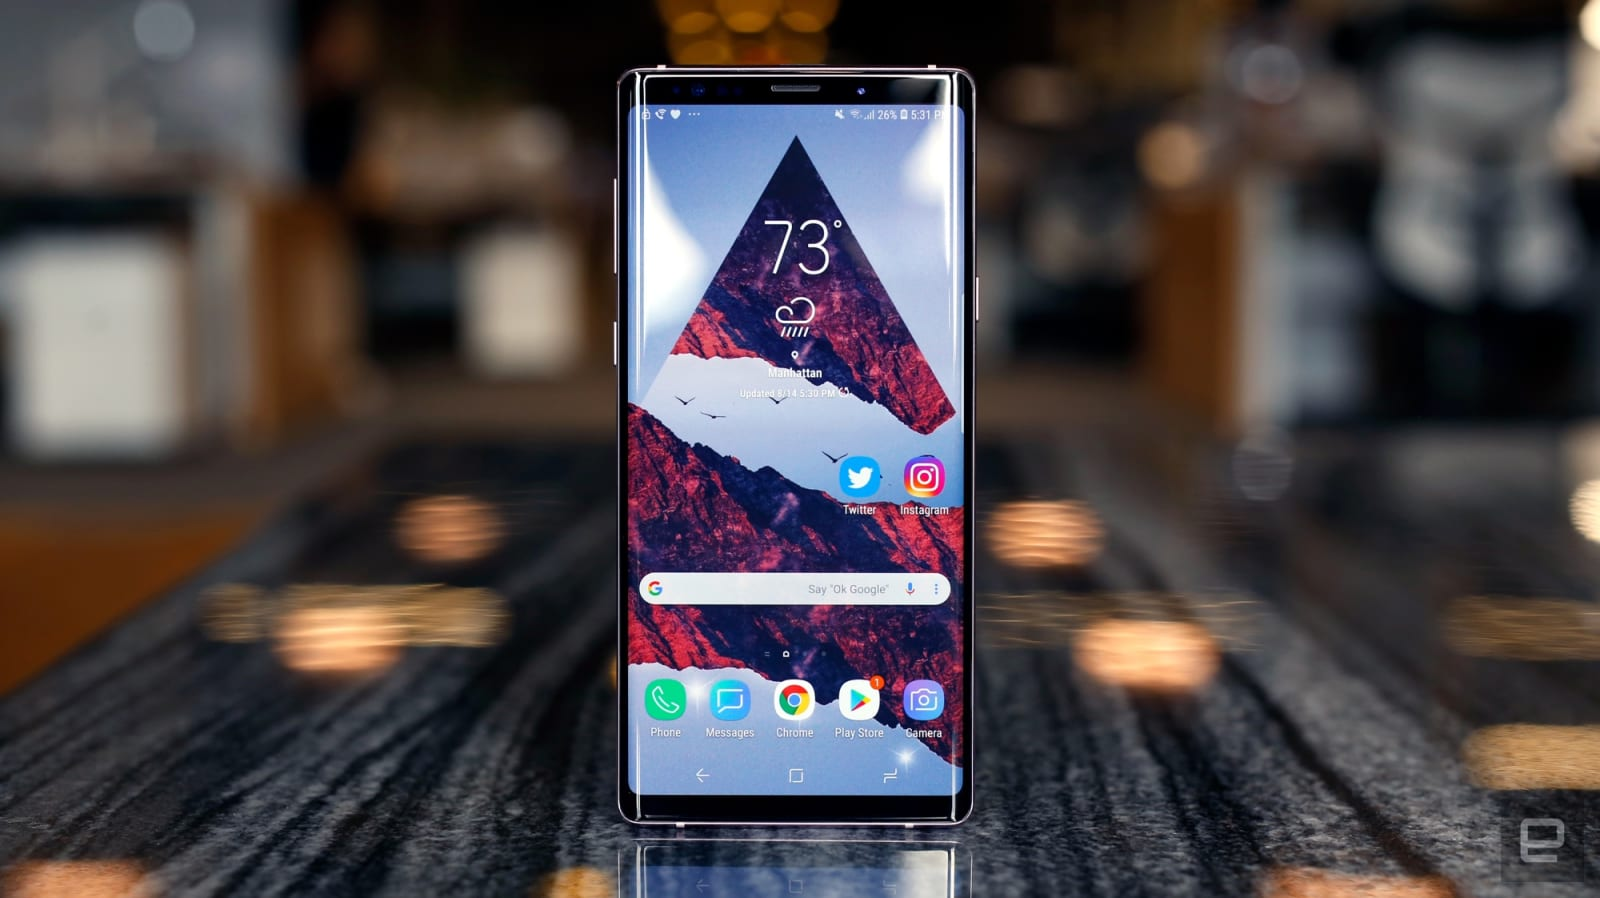 Samsung Galaxy Note 9 Review A Better For Most Of Us Led Cover Note9 Brown Research And Analysis By Our Expert Editorial Teams The Global Score Is Arrived At Only After Curating Hundreds Sometimes Thousands